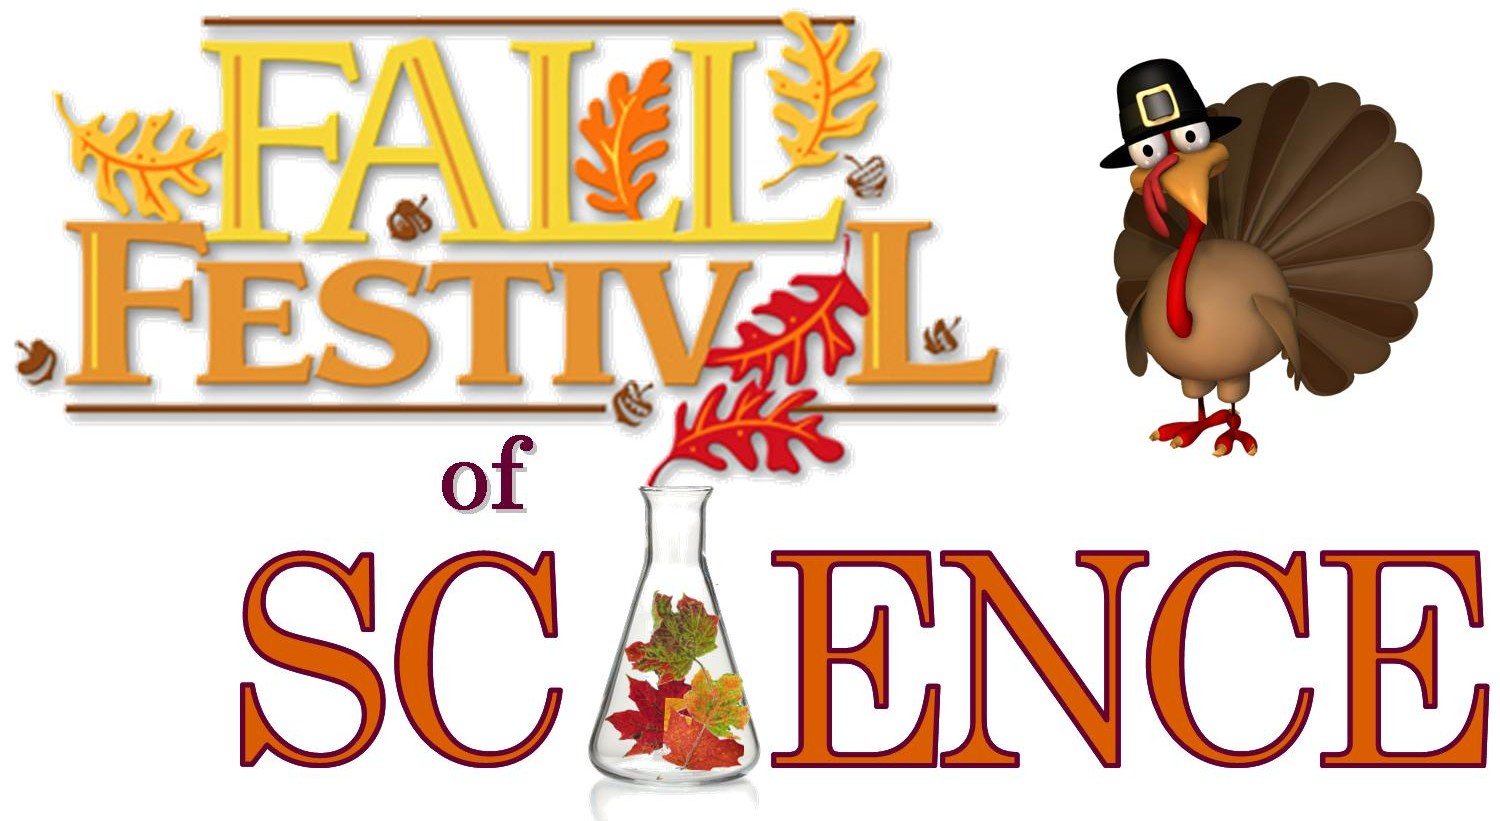 fall-festival-of-science-e1350658312650